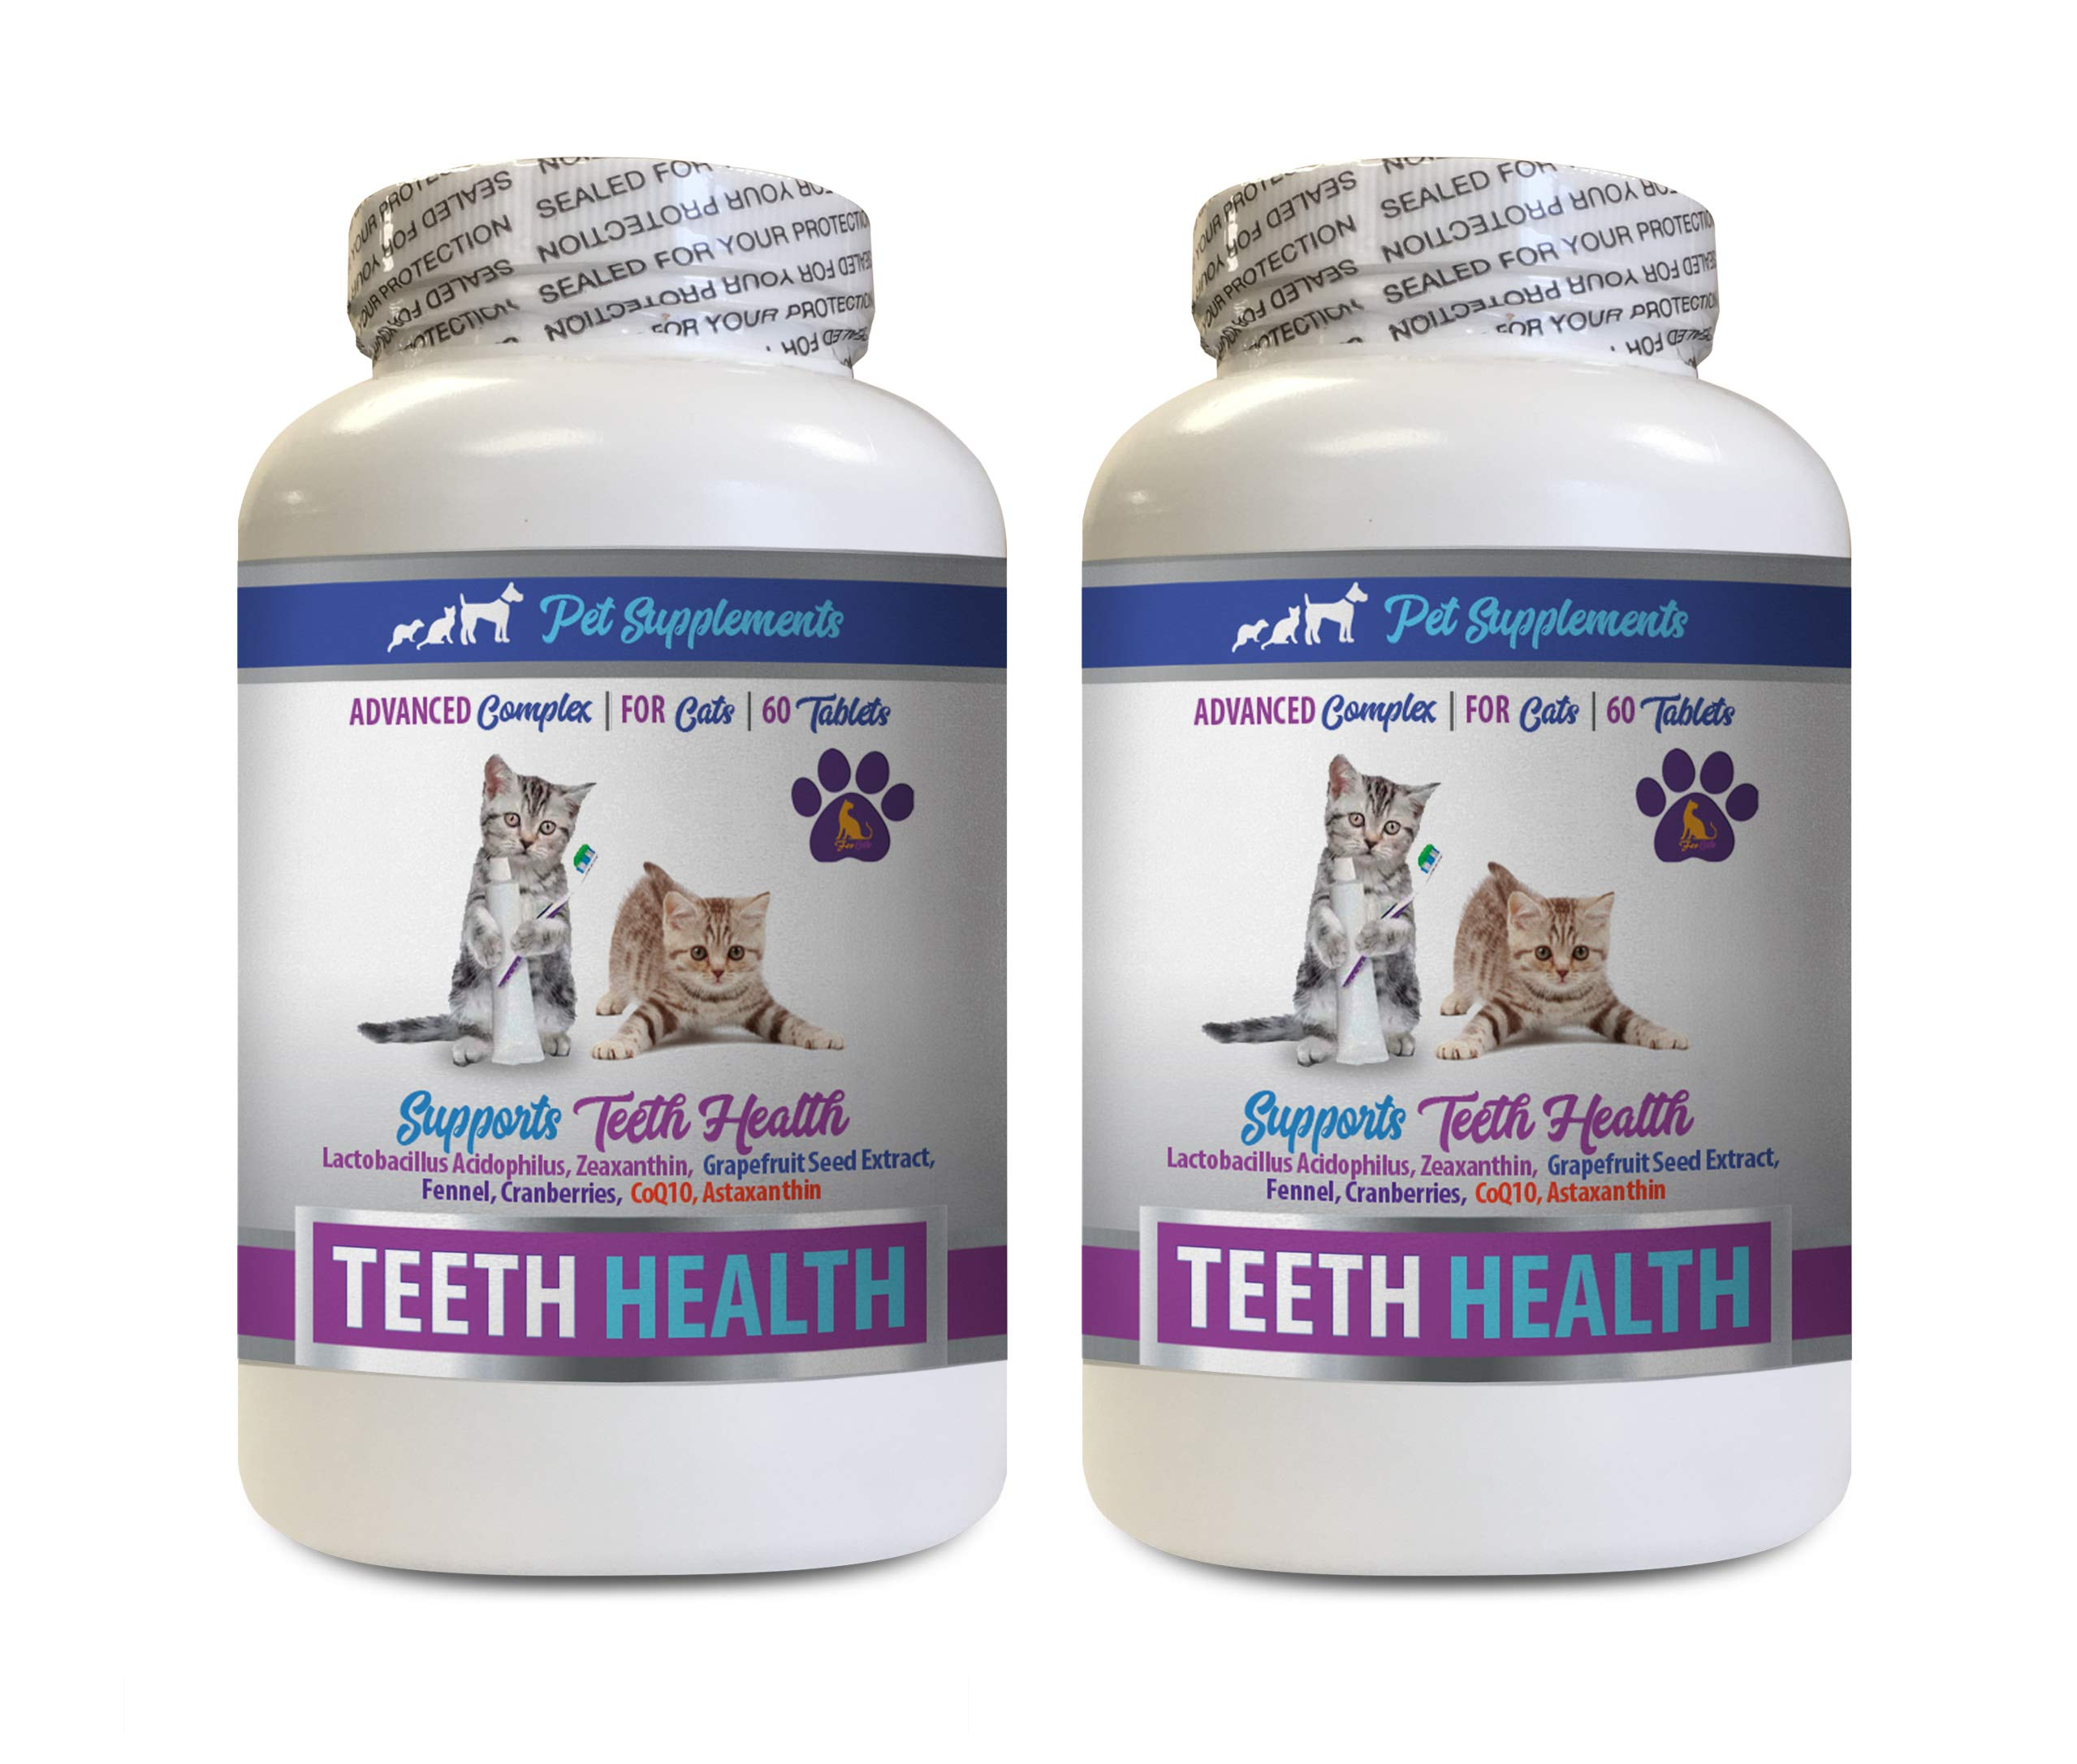 PET SUPPLEMENTS cat Hygiene - CAT Teeth Health - Advanced Mouth Health Complex - Immune Boost - cat Vitamins Senior - 2 Bottles (120 Tablets) by PET SUPPLEMENTS